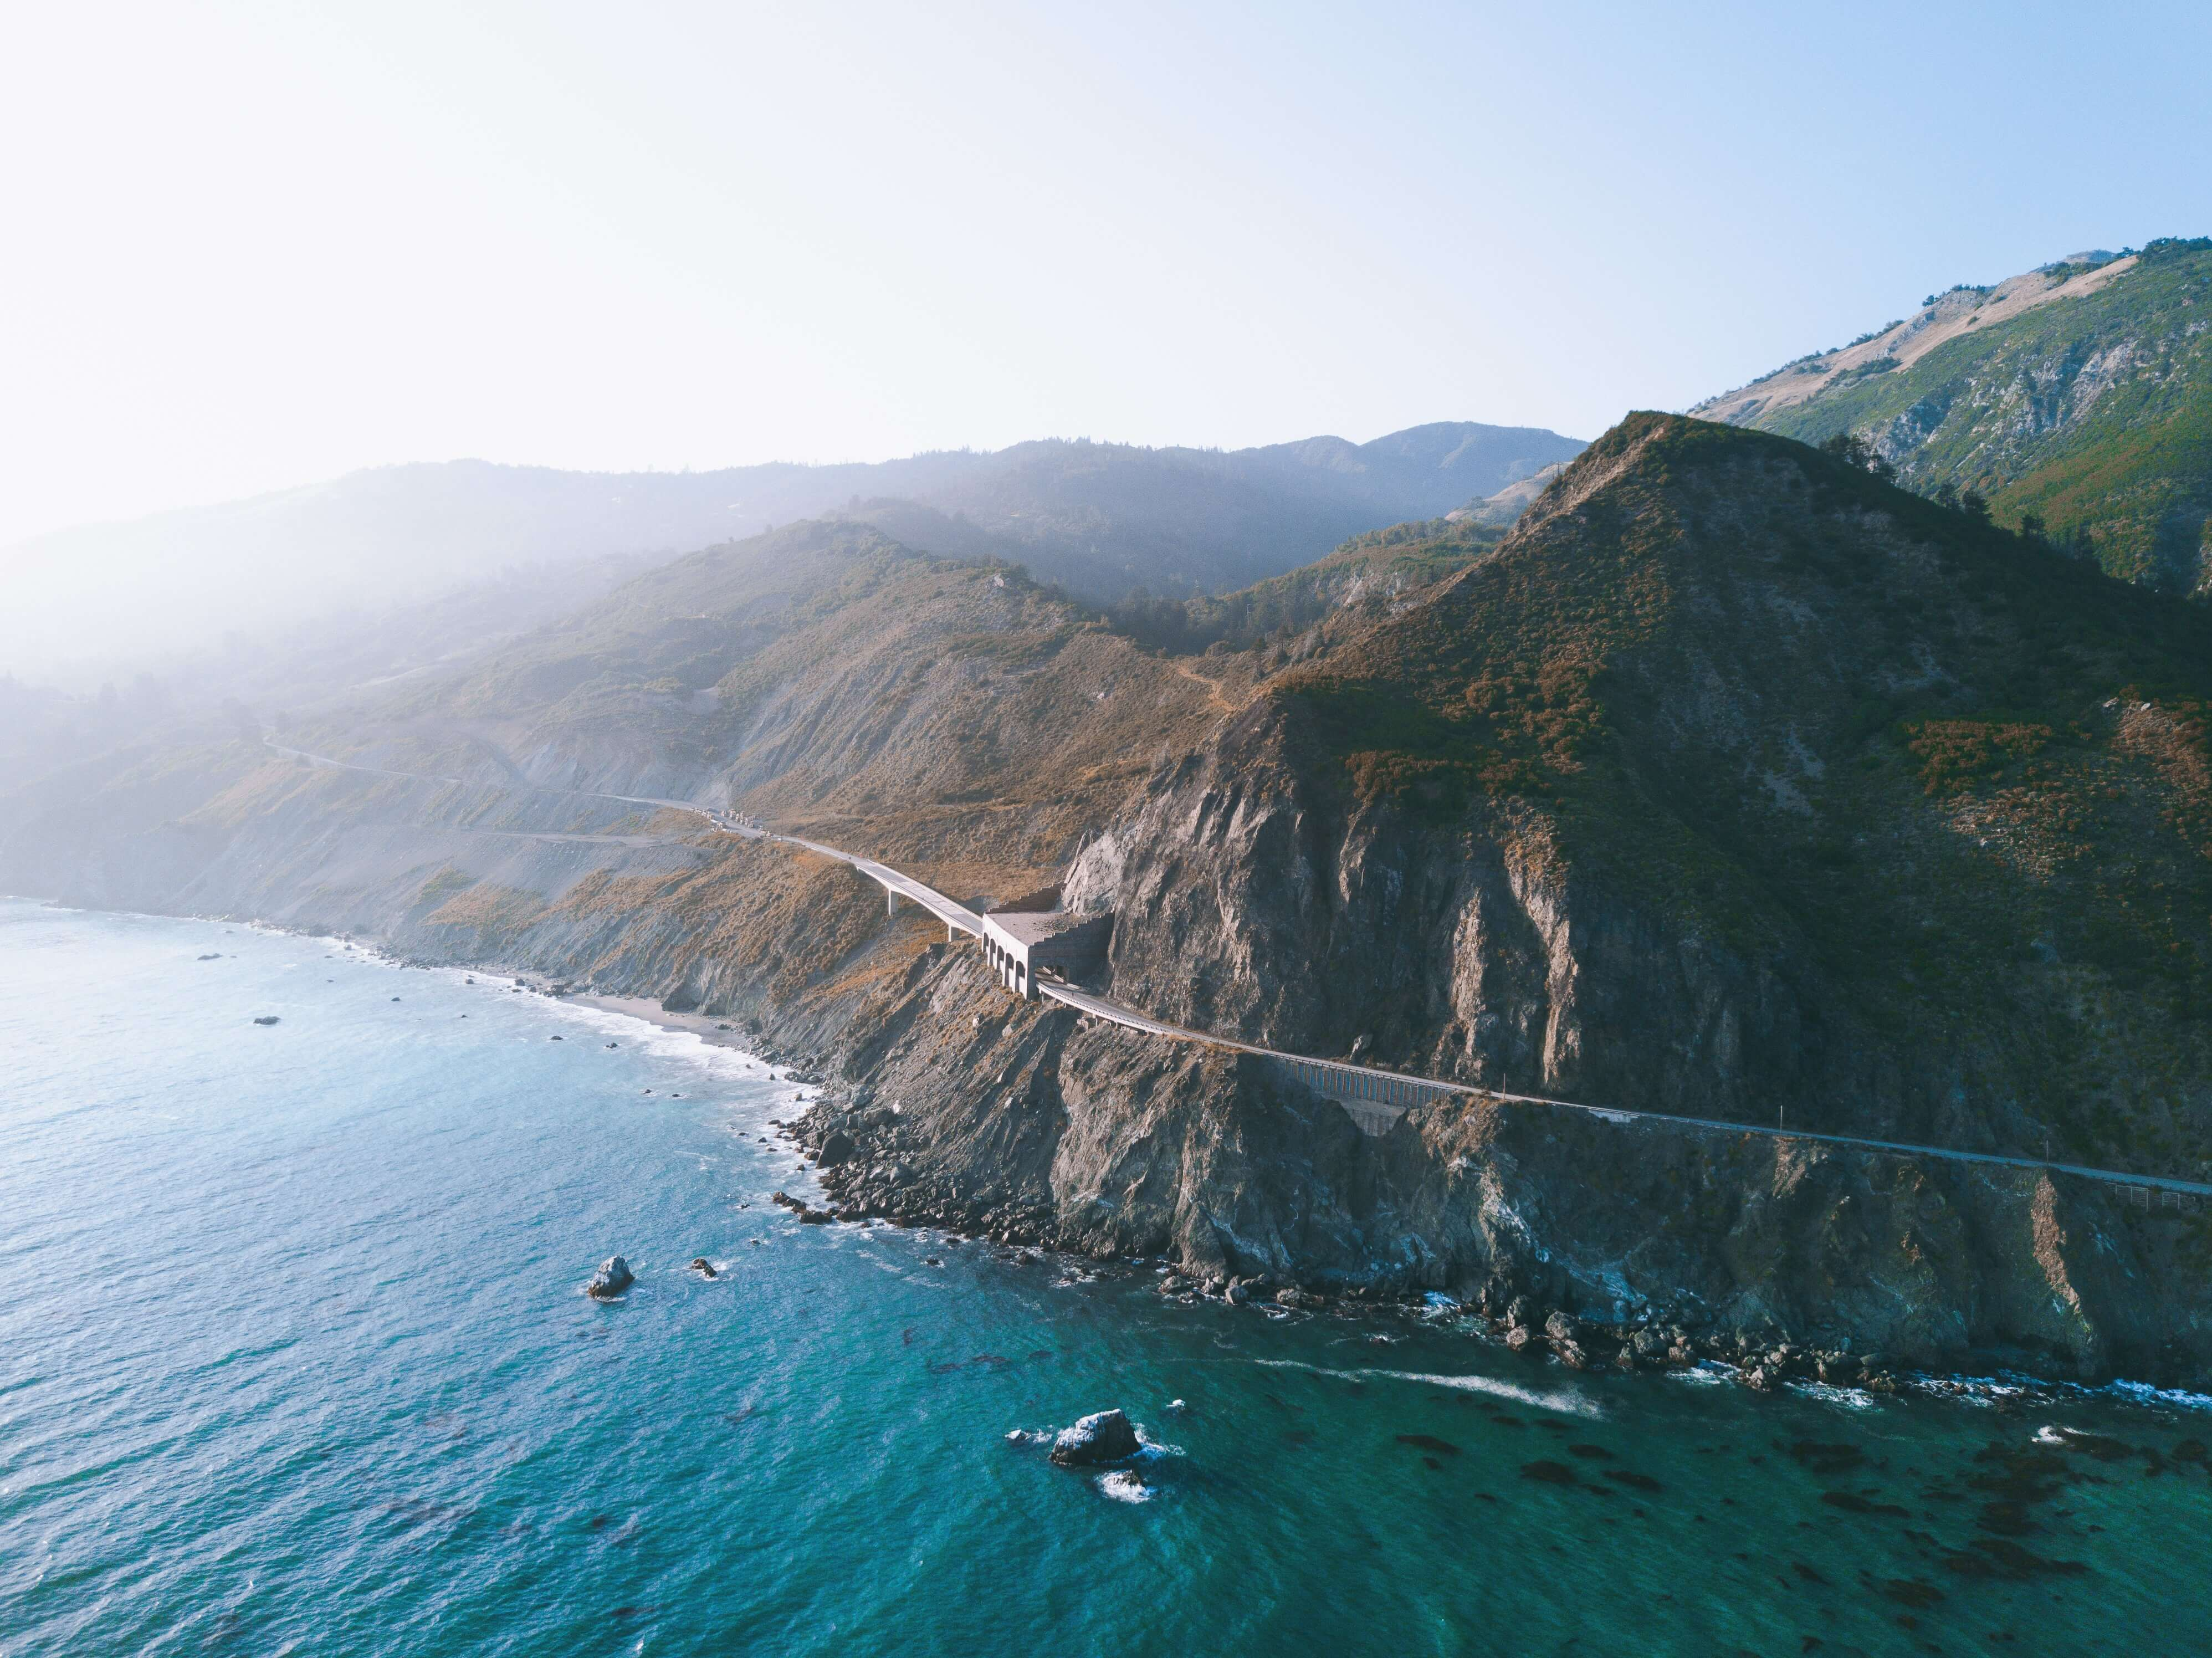 View of the Big Sur in California